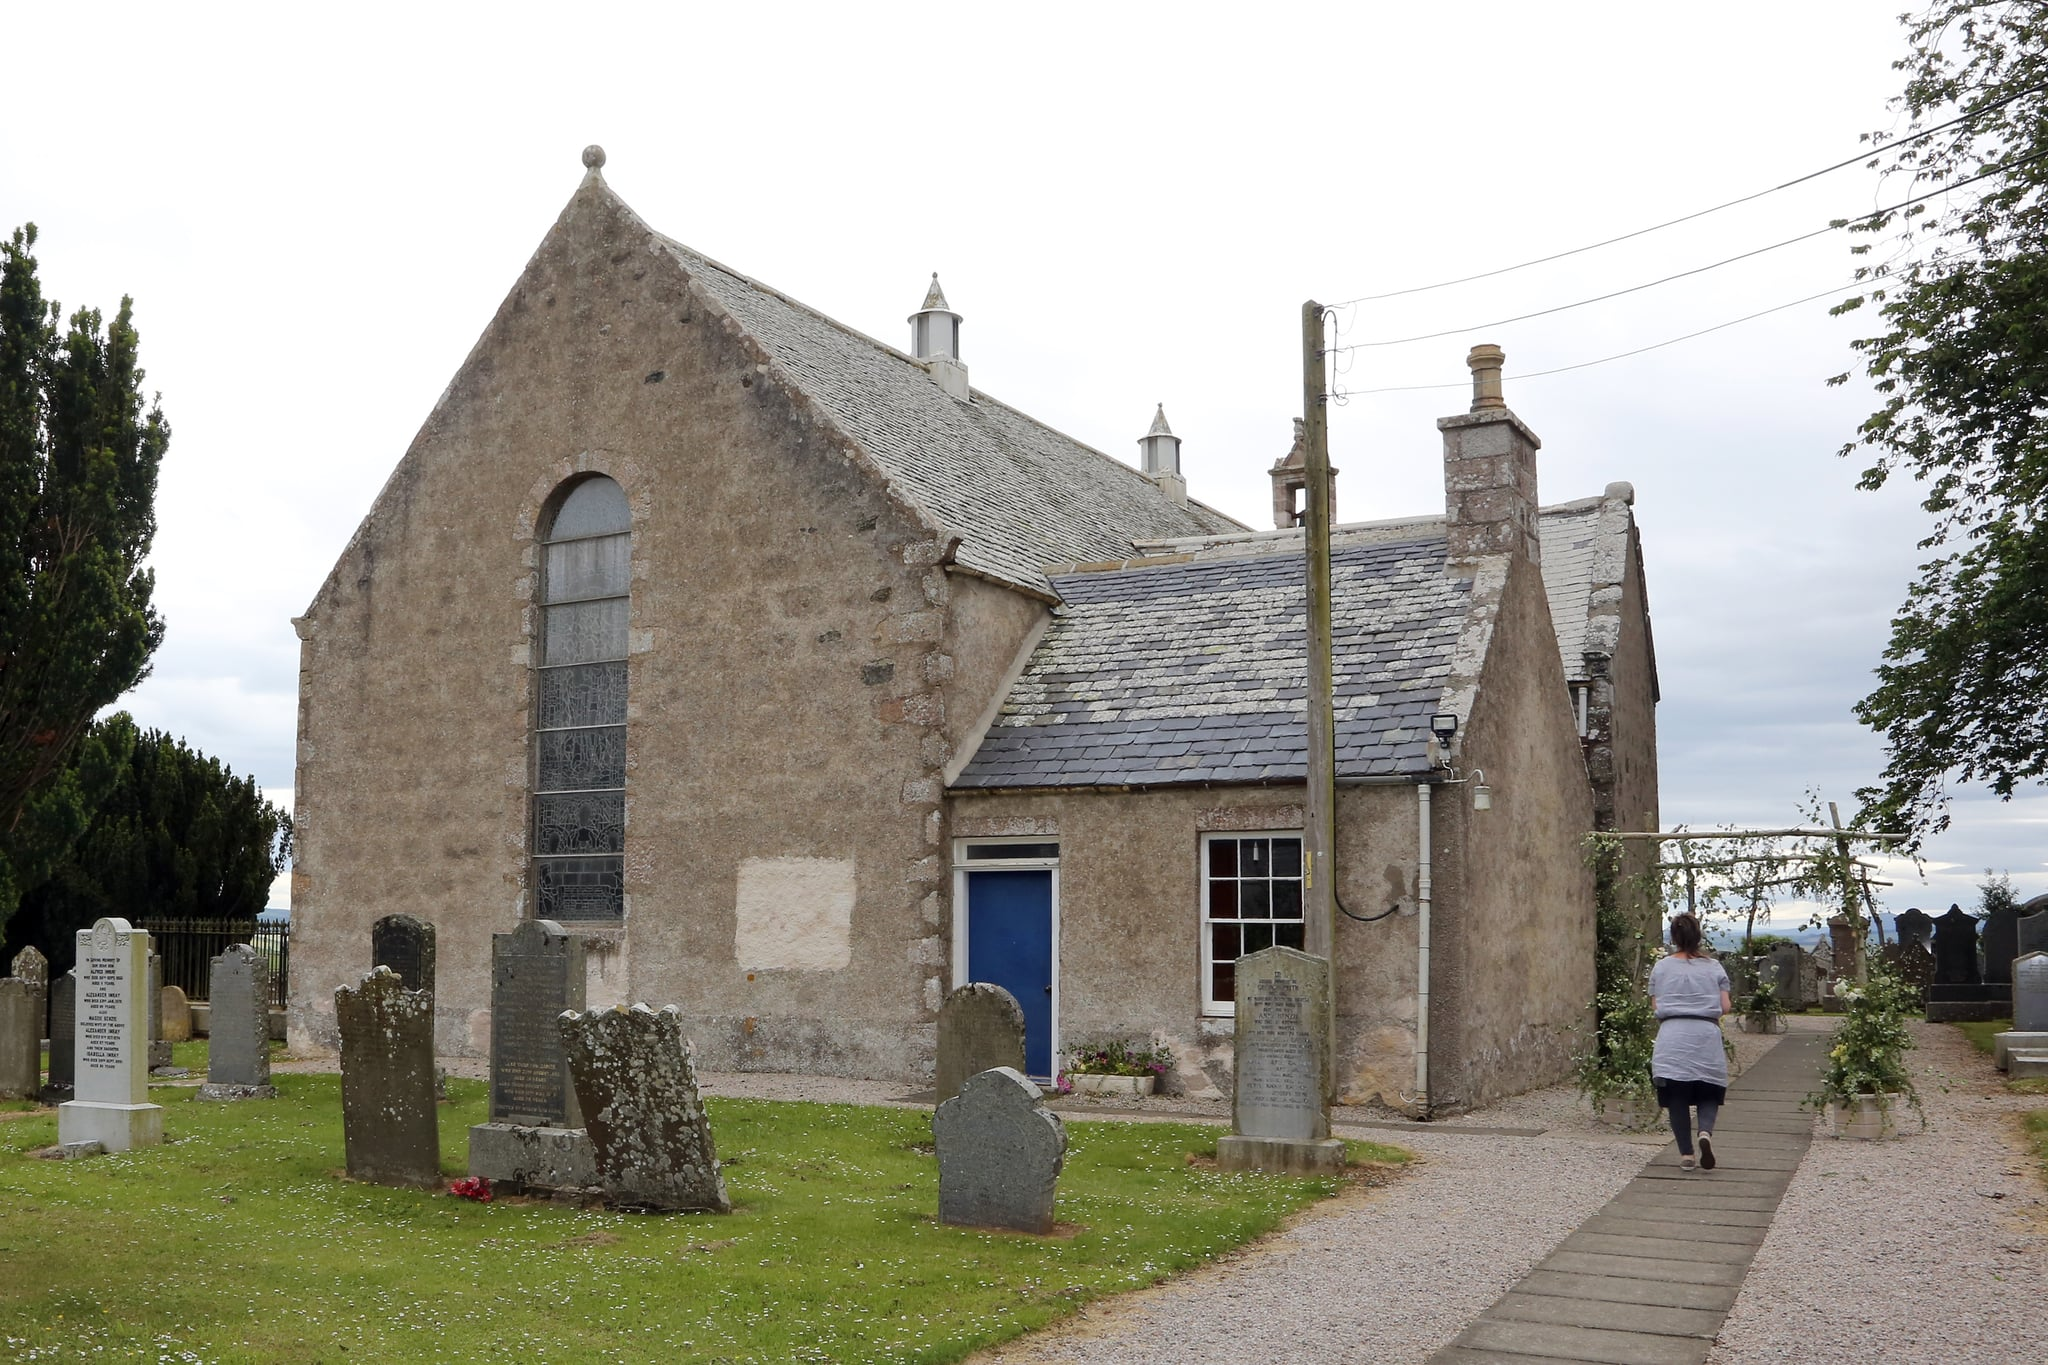 ABERDEEN, SCOTLAND - JUNE 23: Rayne Church in Kirkton on Rayne venue for the wedding of Kit Harrington and Rose Leslie on June 23, 2018 in Aberdeen, Scotland. (Photo by Mark Milan/GC Images)